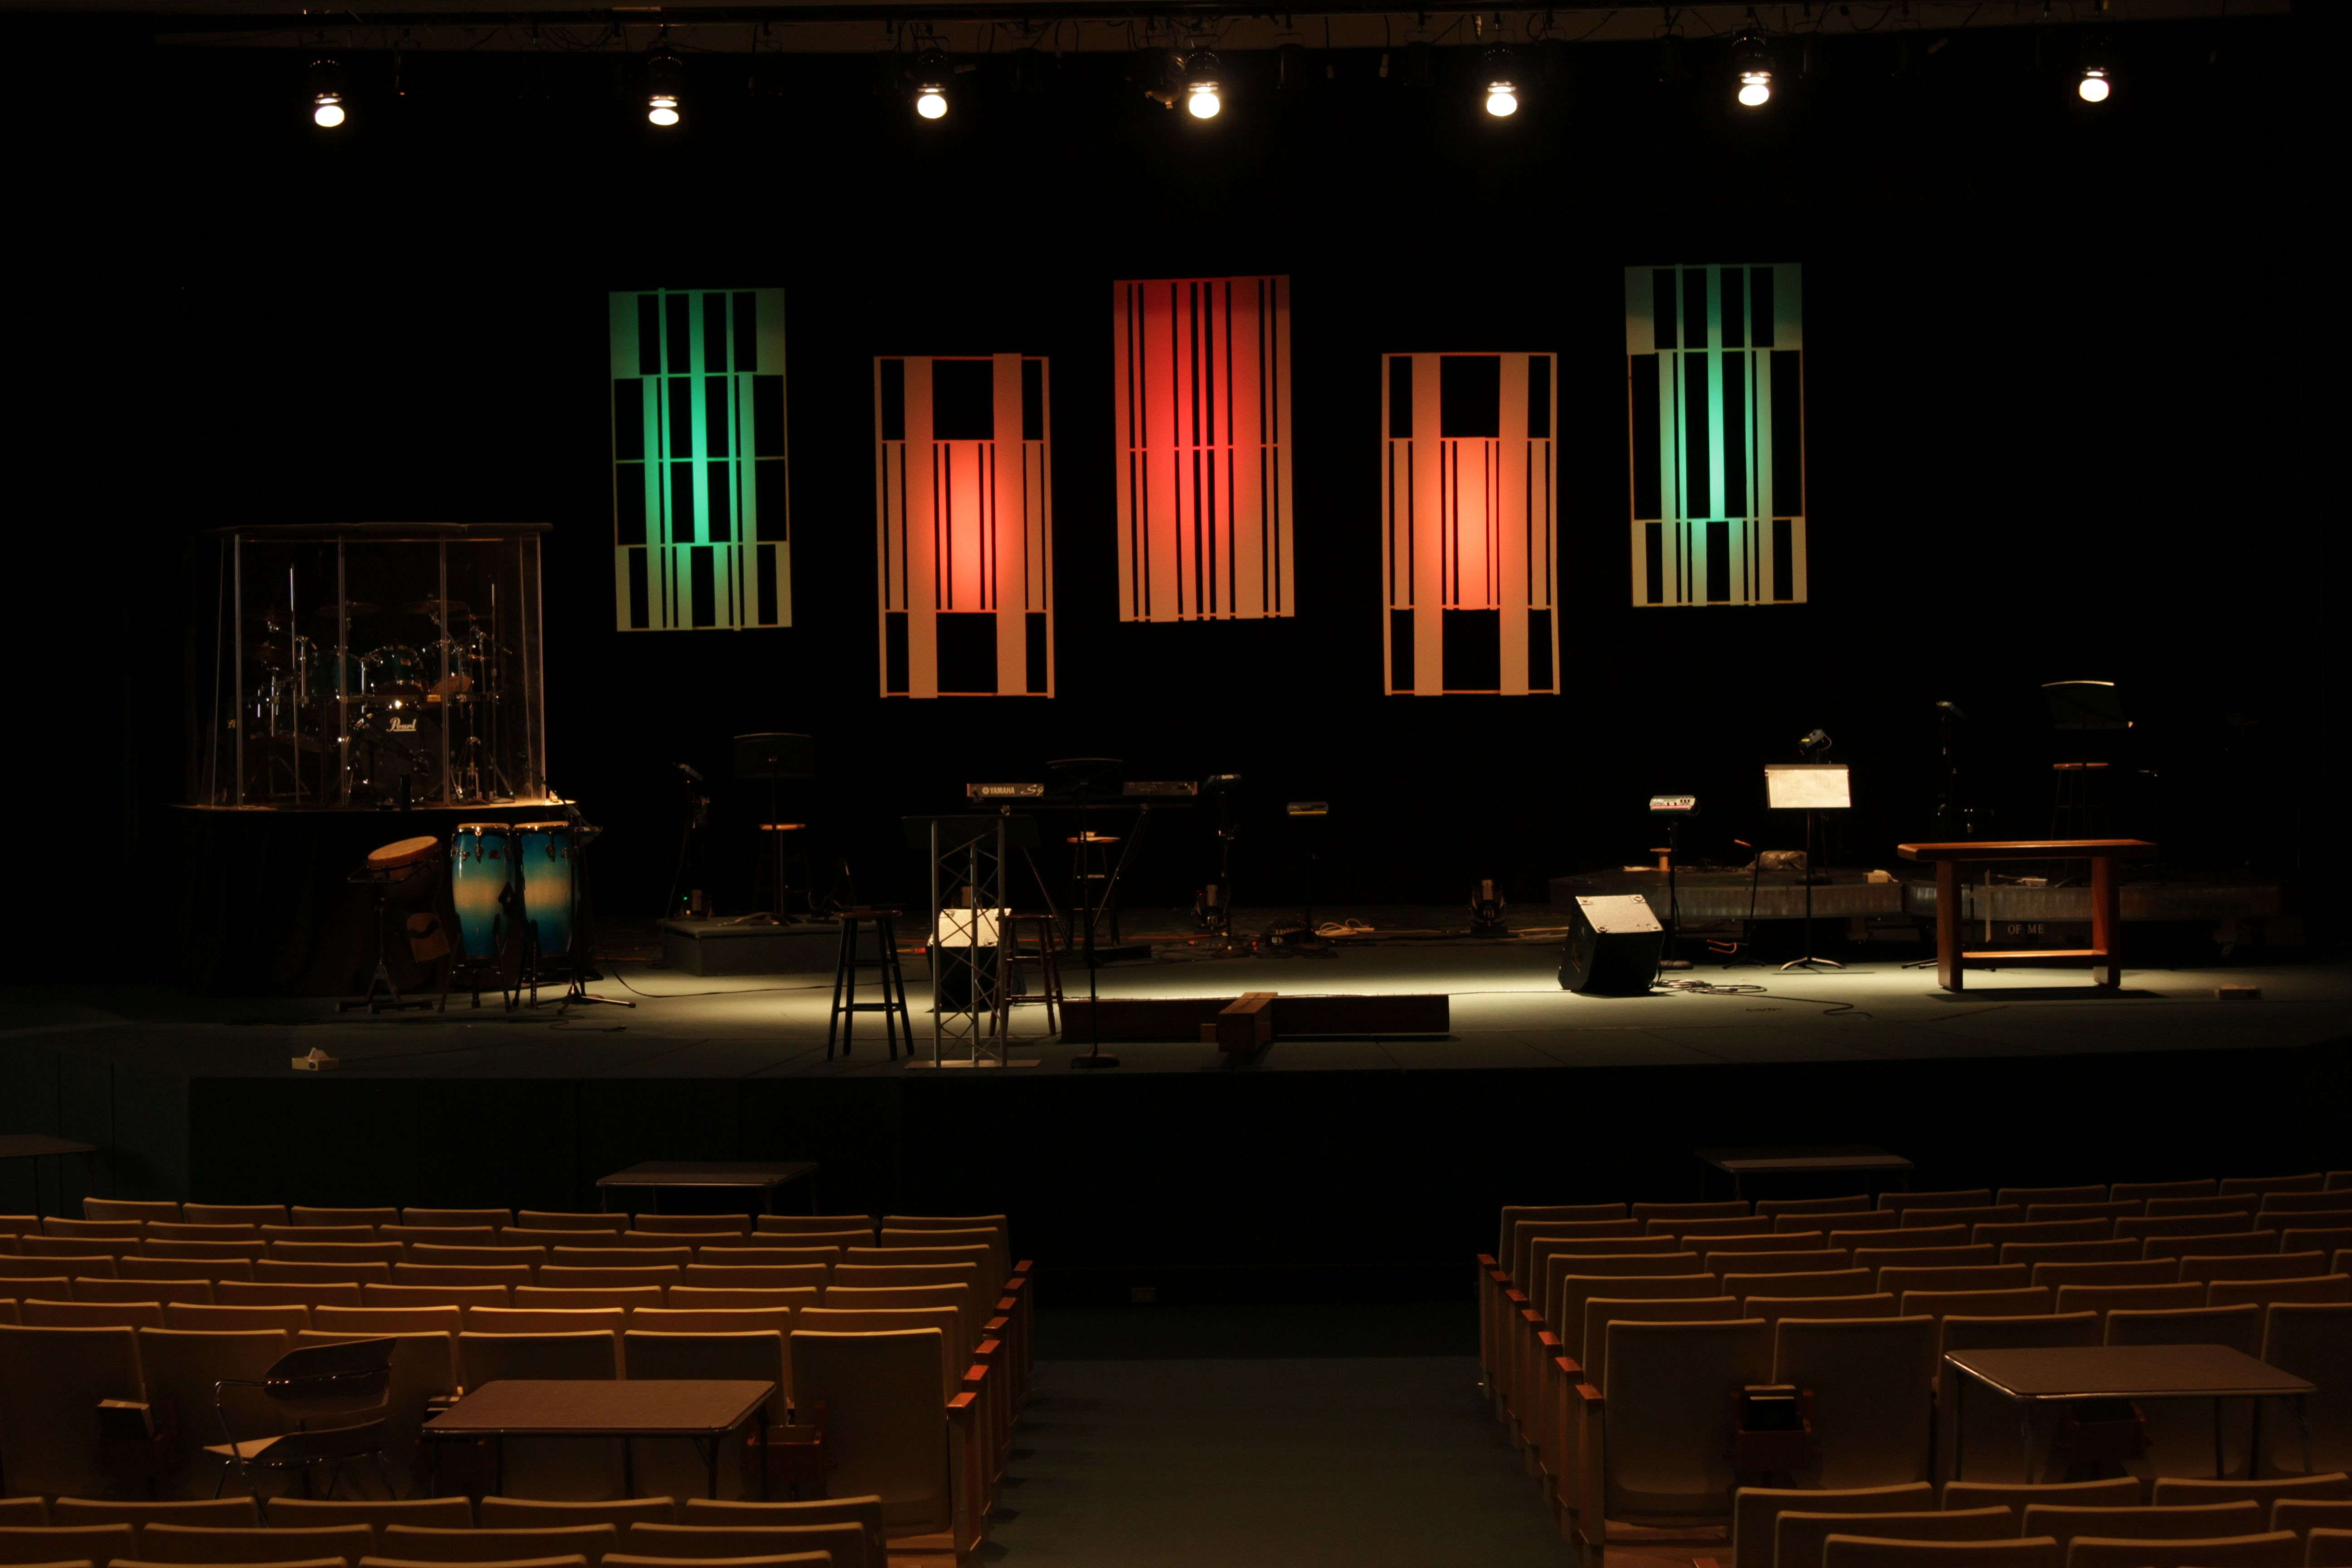 Church Stage Design Ideas Church Stage Design Stage Design Church Stage